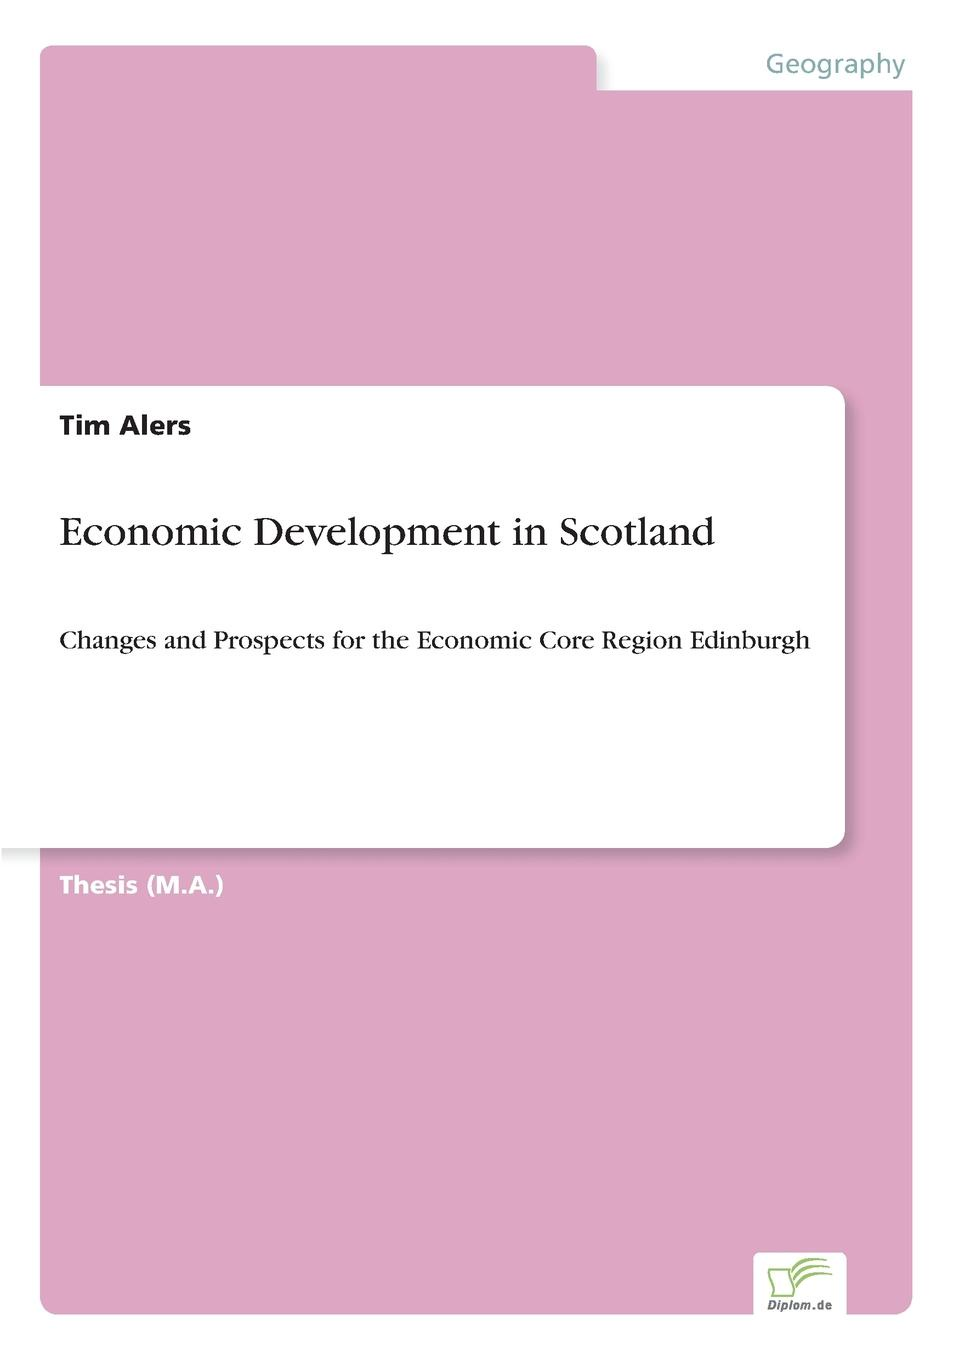 Tim Alers Economic Development in Scotland виниловая пластинка ramazzotti eros eros duets